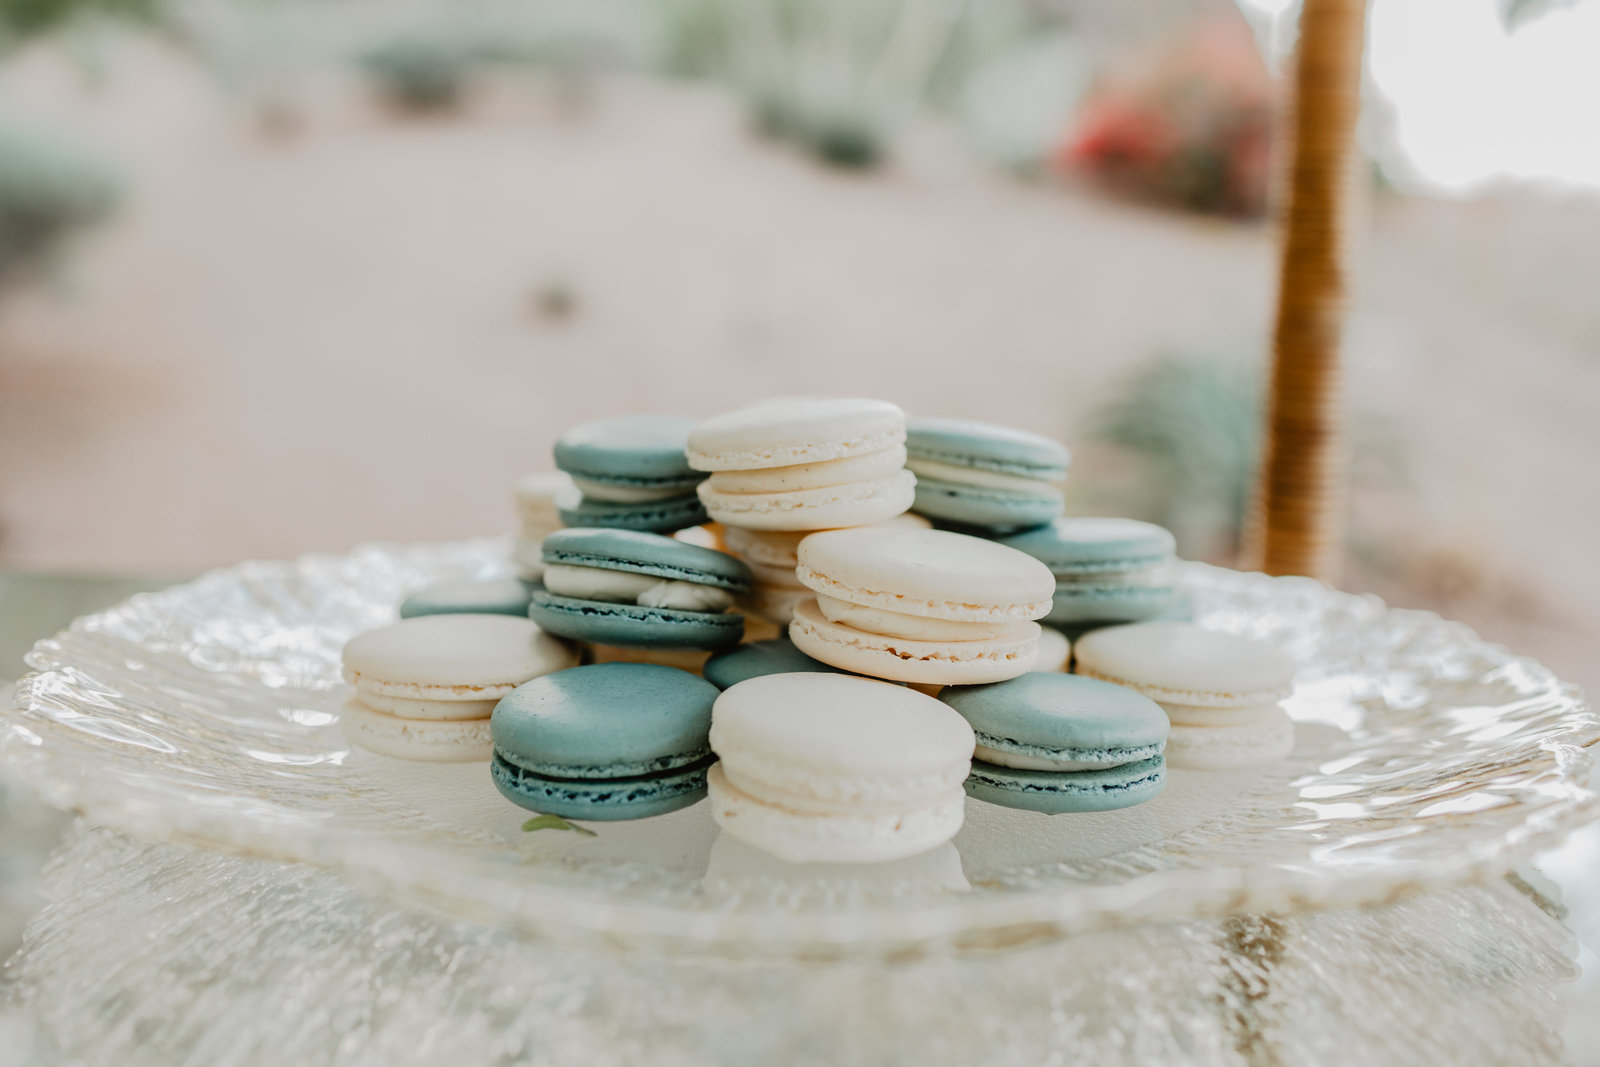 Macaroons make a perfect wedding cake alternative.